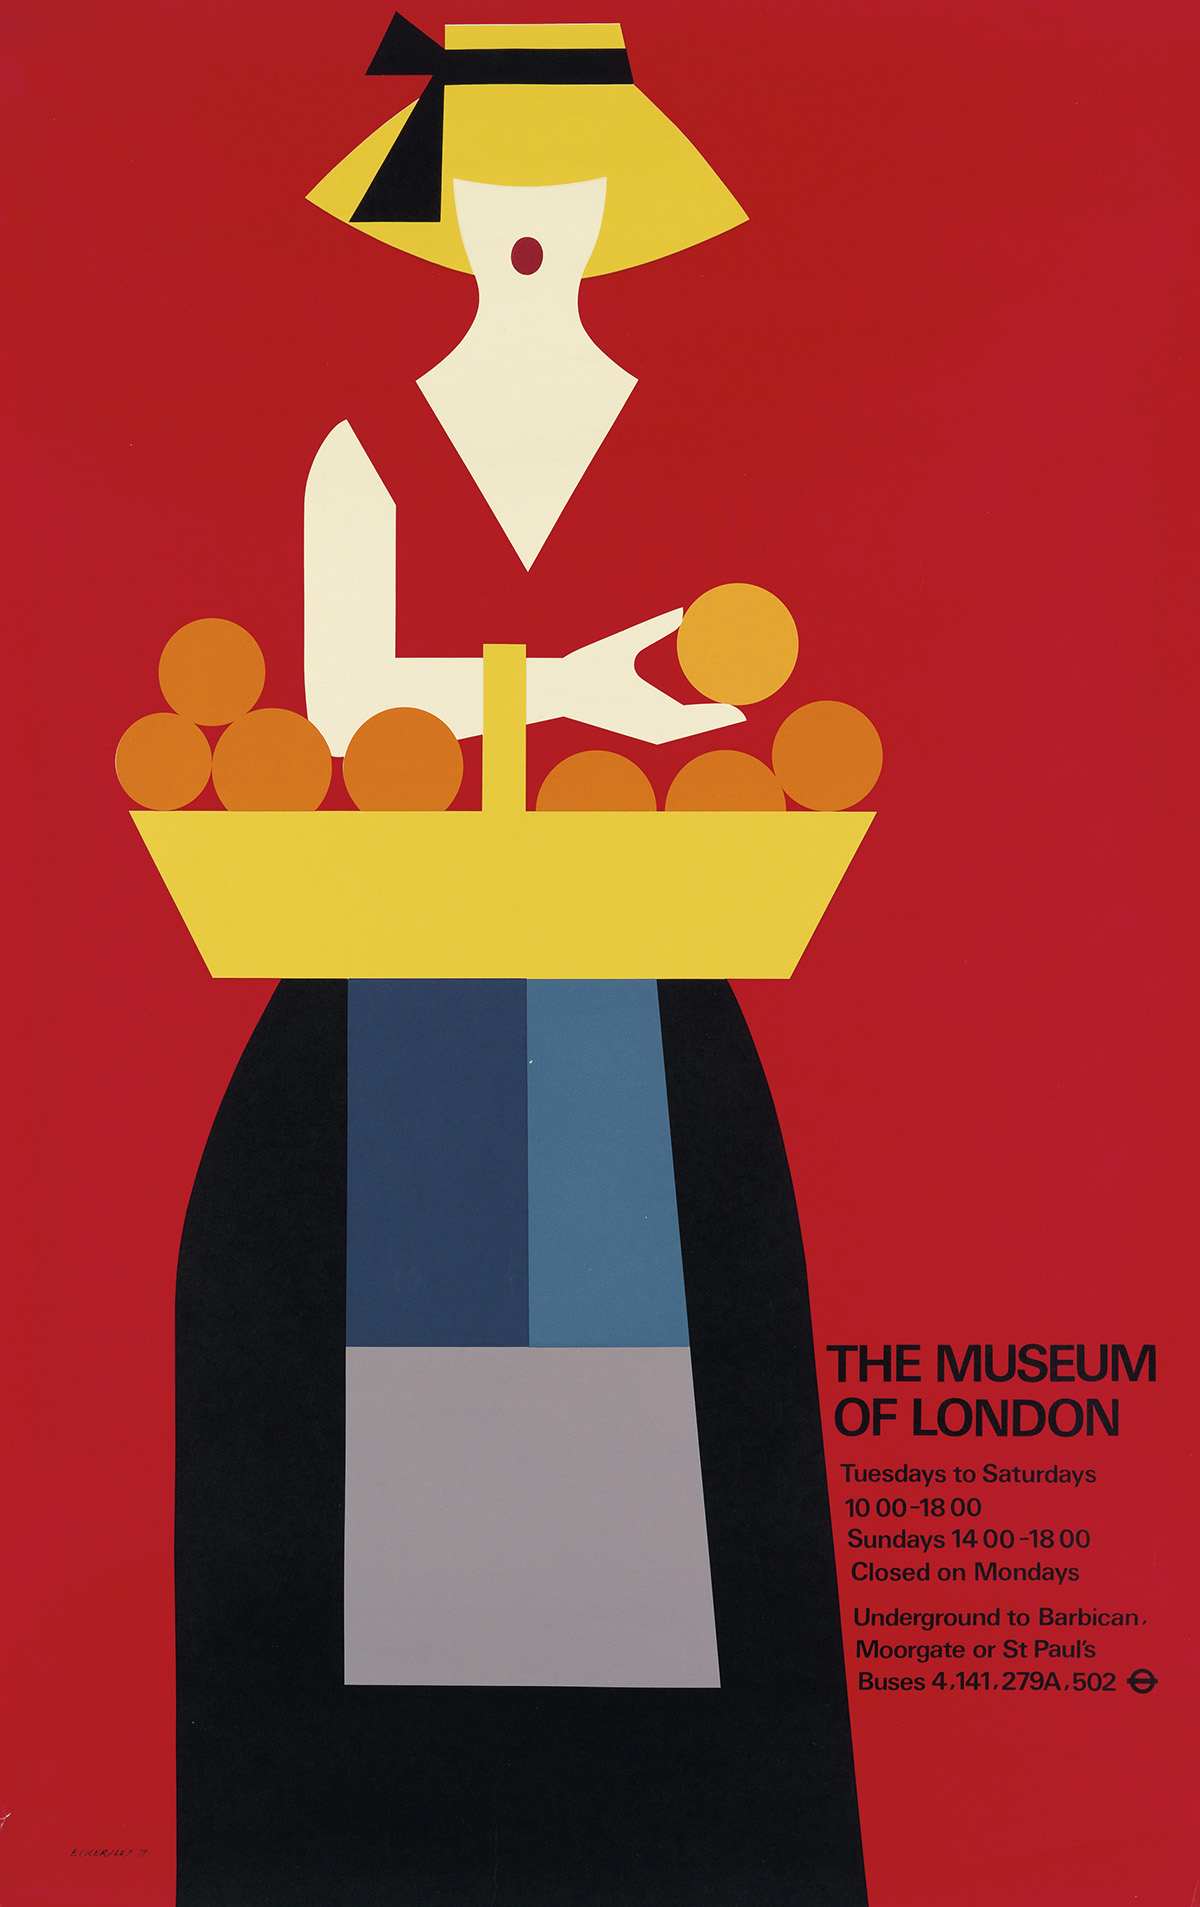 TOM ECKERSLEY (1914-1997). THE MUSEUM OF LONDON. 1977. 40x25 inches, 101x63 cm.